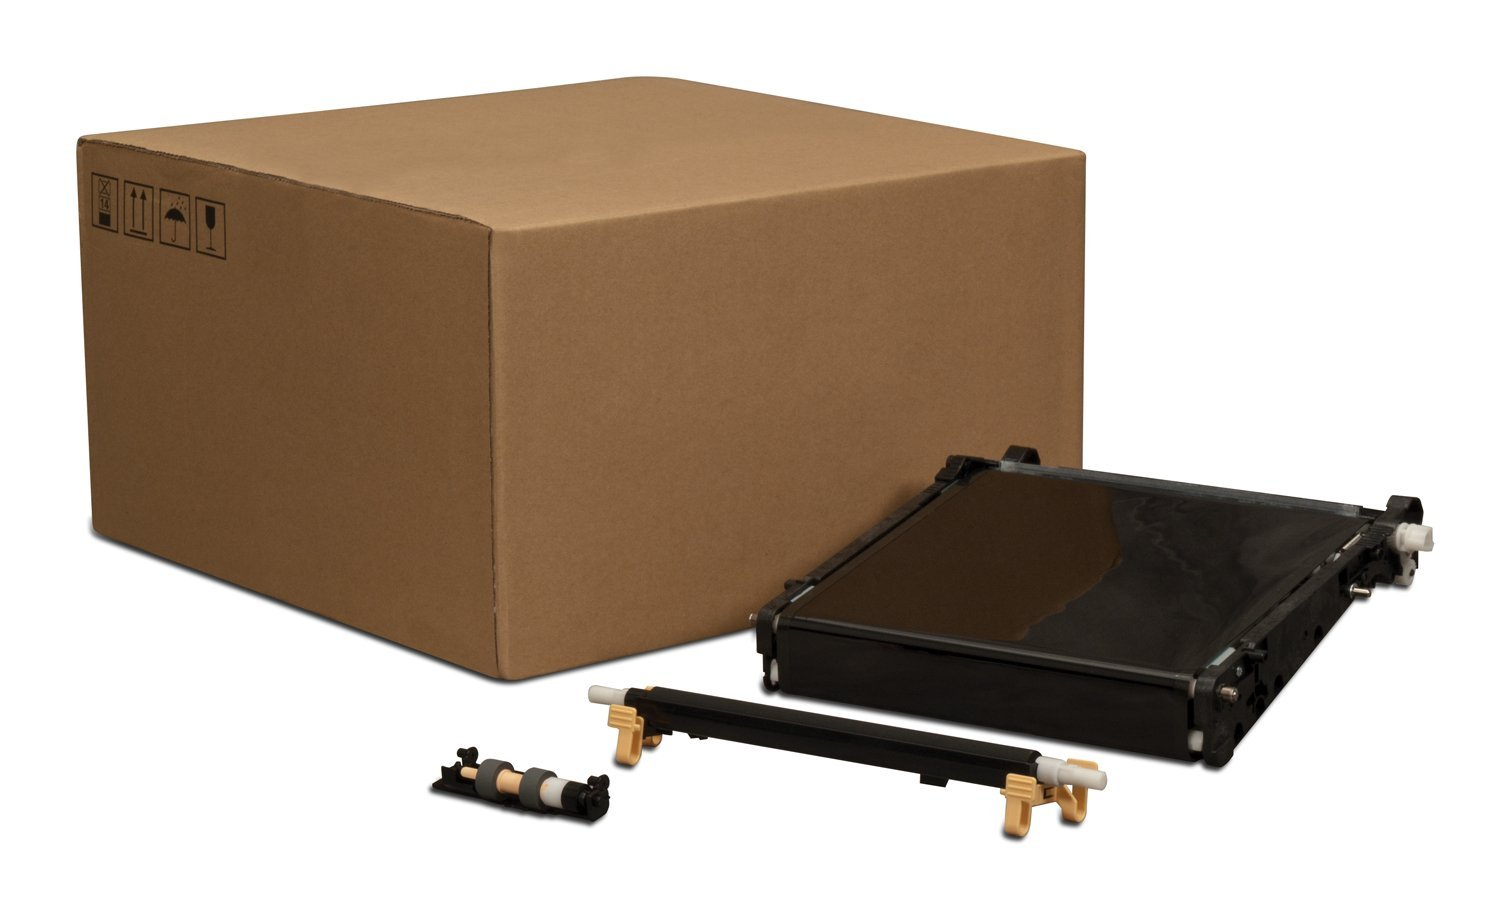 Genuine Xerox Transfer Unit Kit for the Xerox Phaser 6600 or WorkCentre 6605, 108R01122 (Renewed) by Xerox (Image #1)